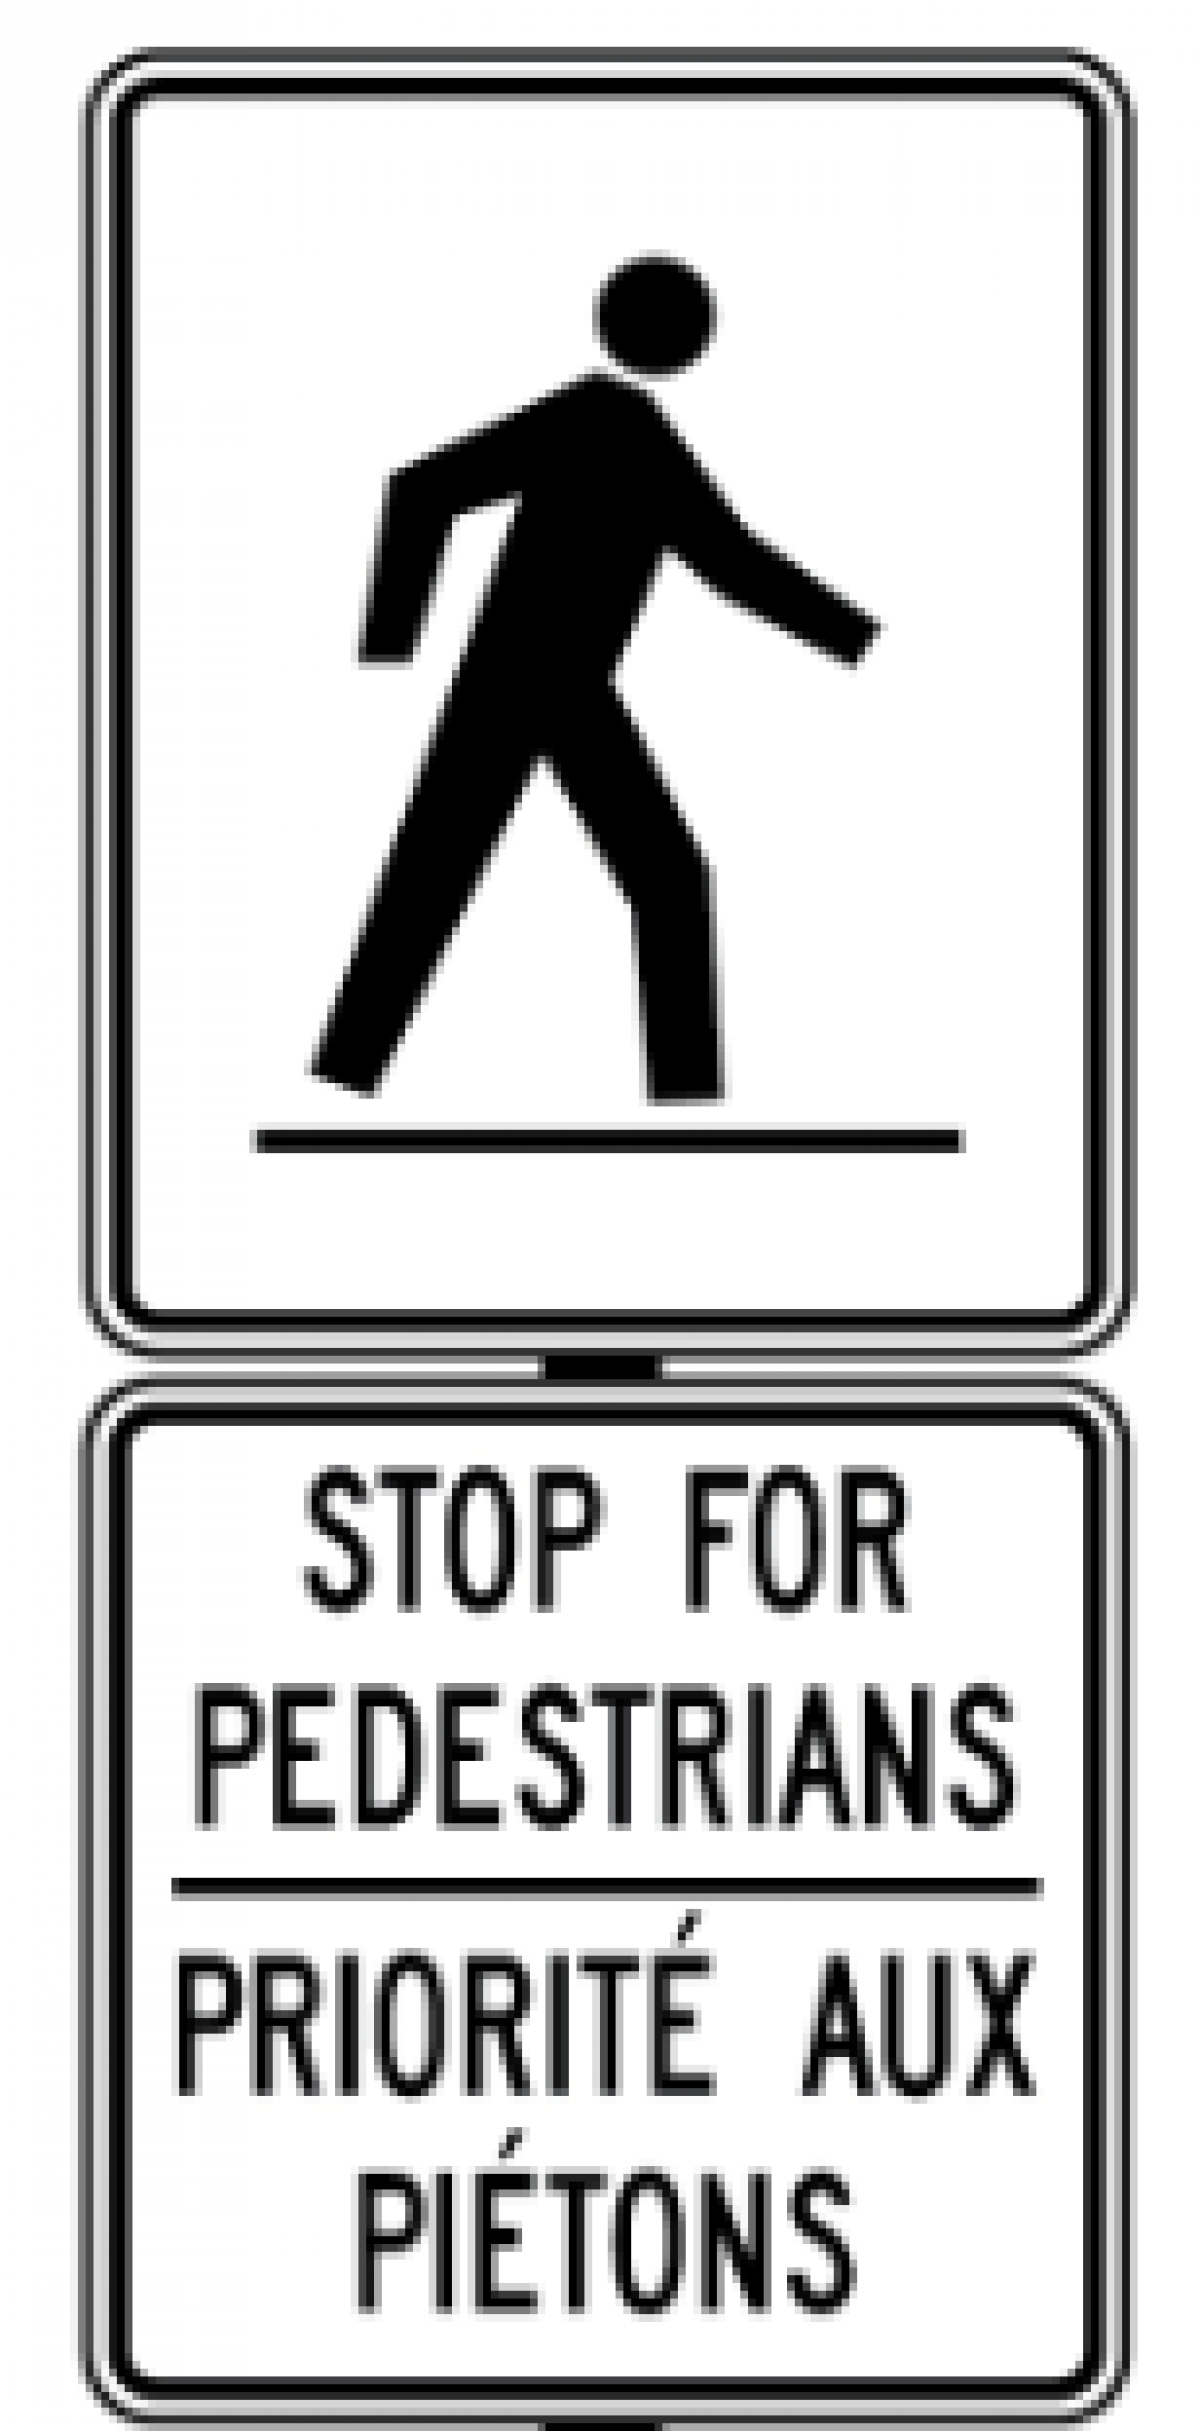 New Pedestrian Crossing in Old Ottawa South